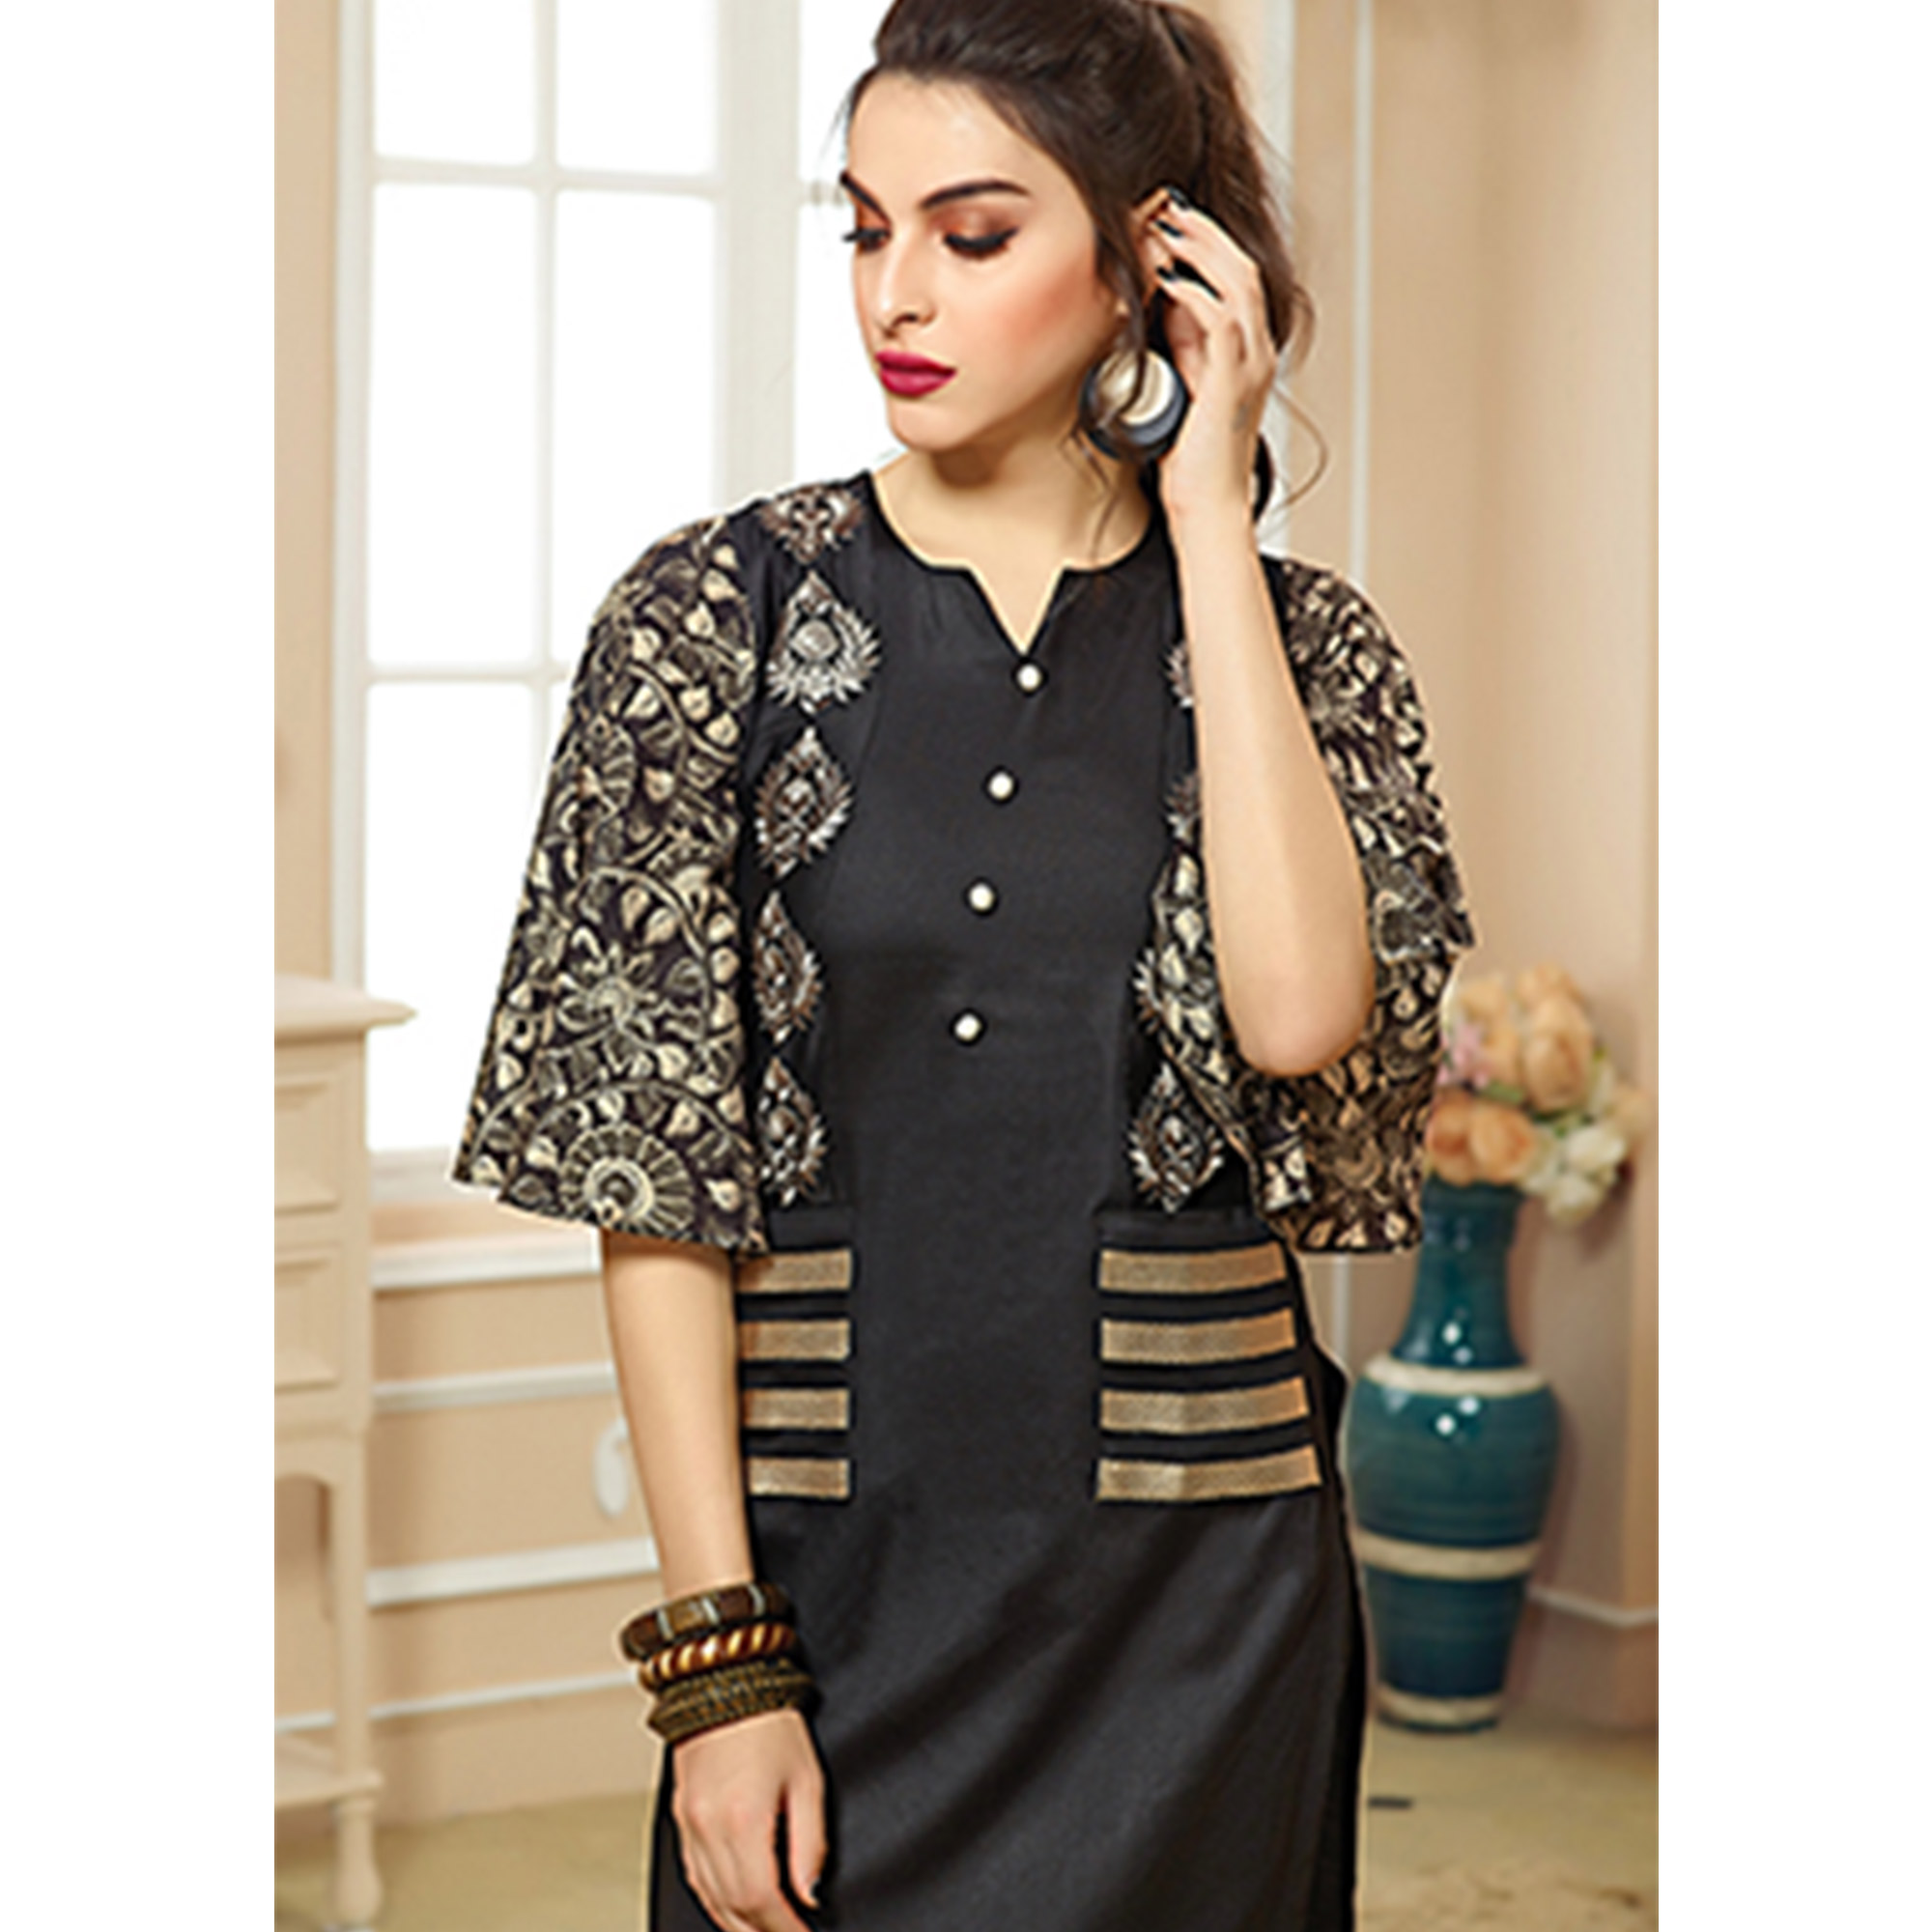 Charming Black Colored Party Wear Embroidered Cotton Kurti